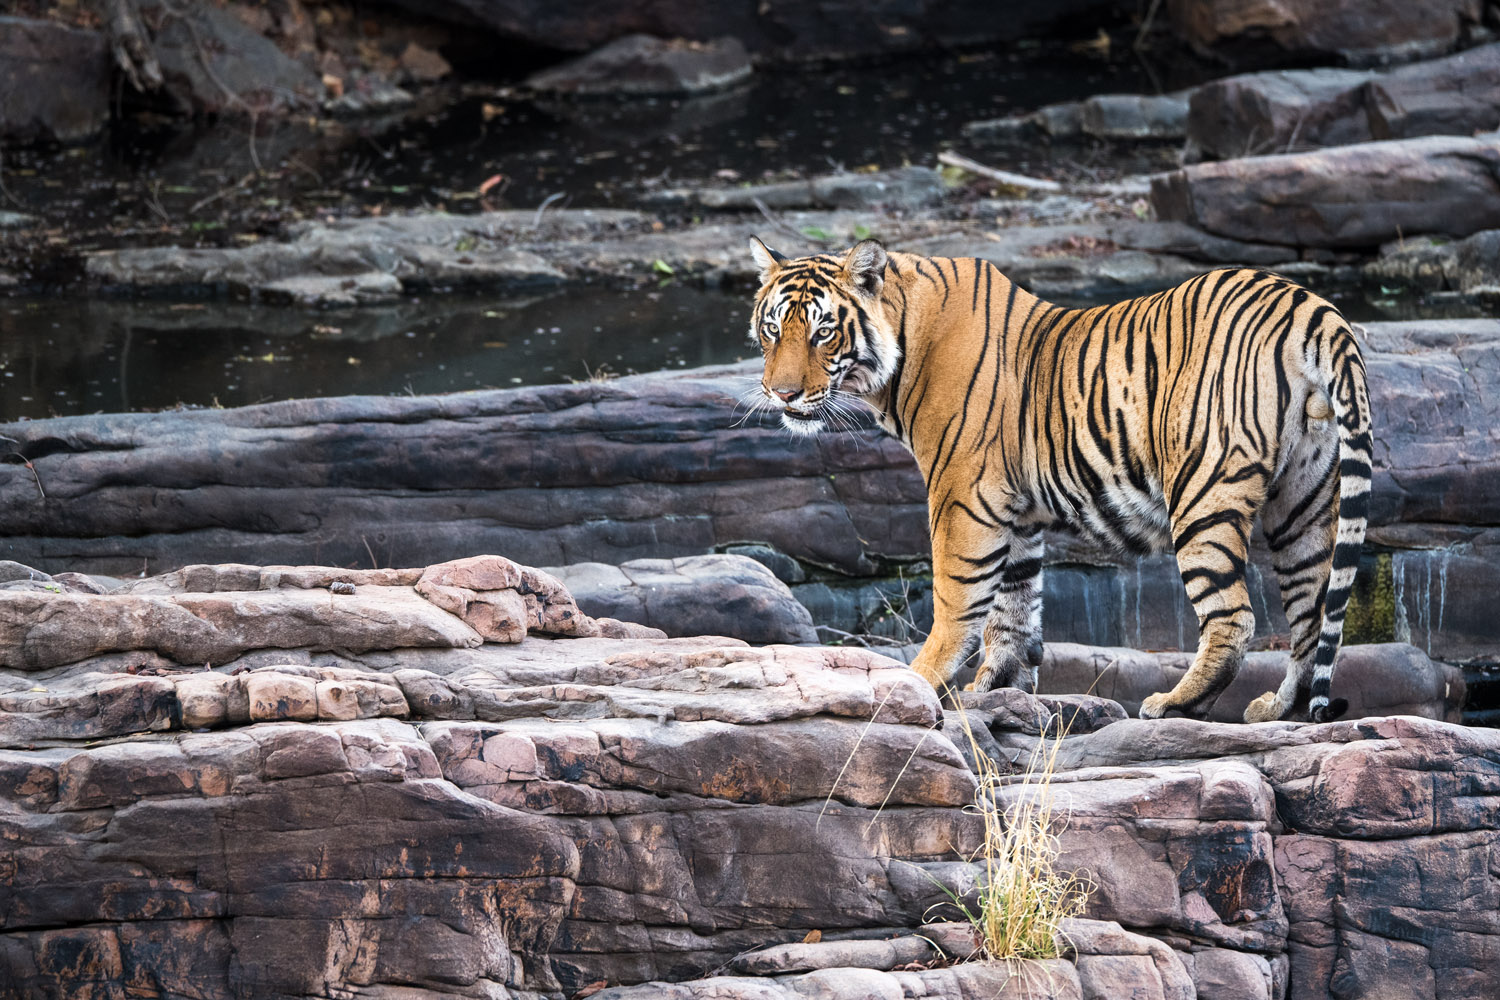 Bengal tiger on rocky ledge, Ranthambhore National Park, Rajasthan, India